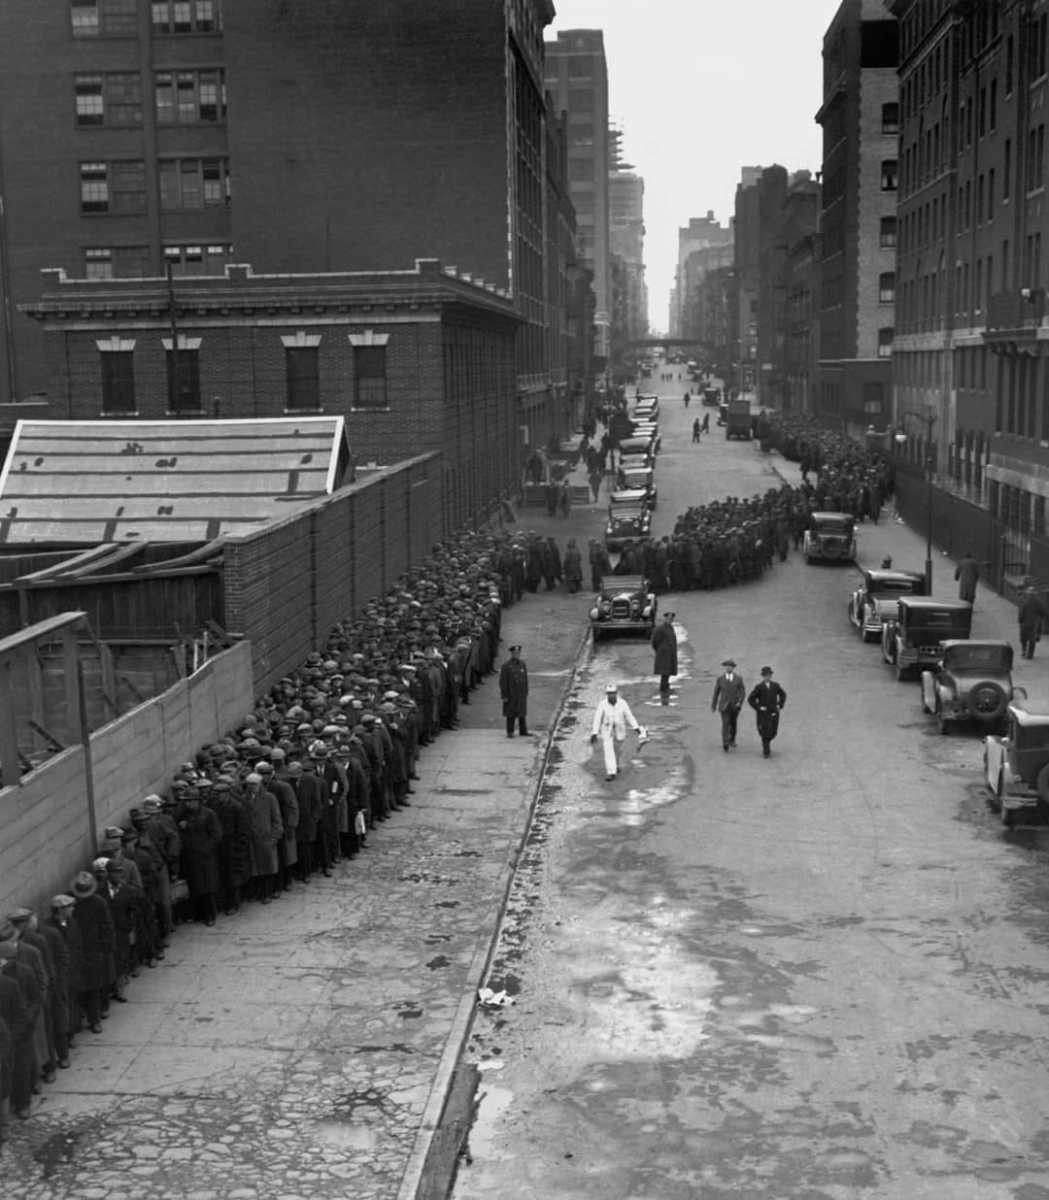 Hundreds of people line up for the free Christmas dinner at the New York Municipal Lodging House during the Great Depression December 25, 1931.